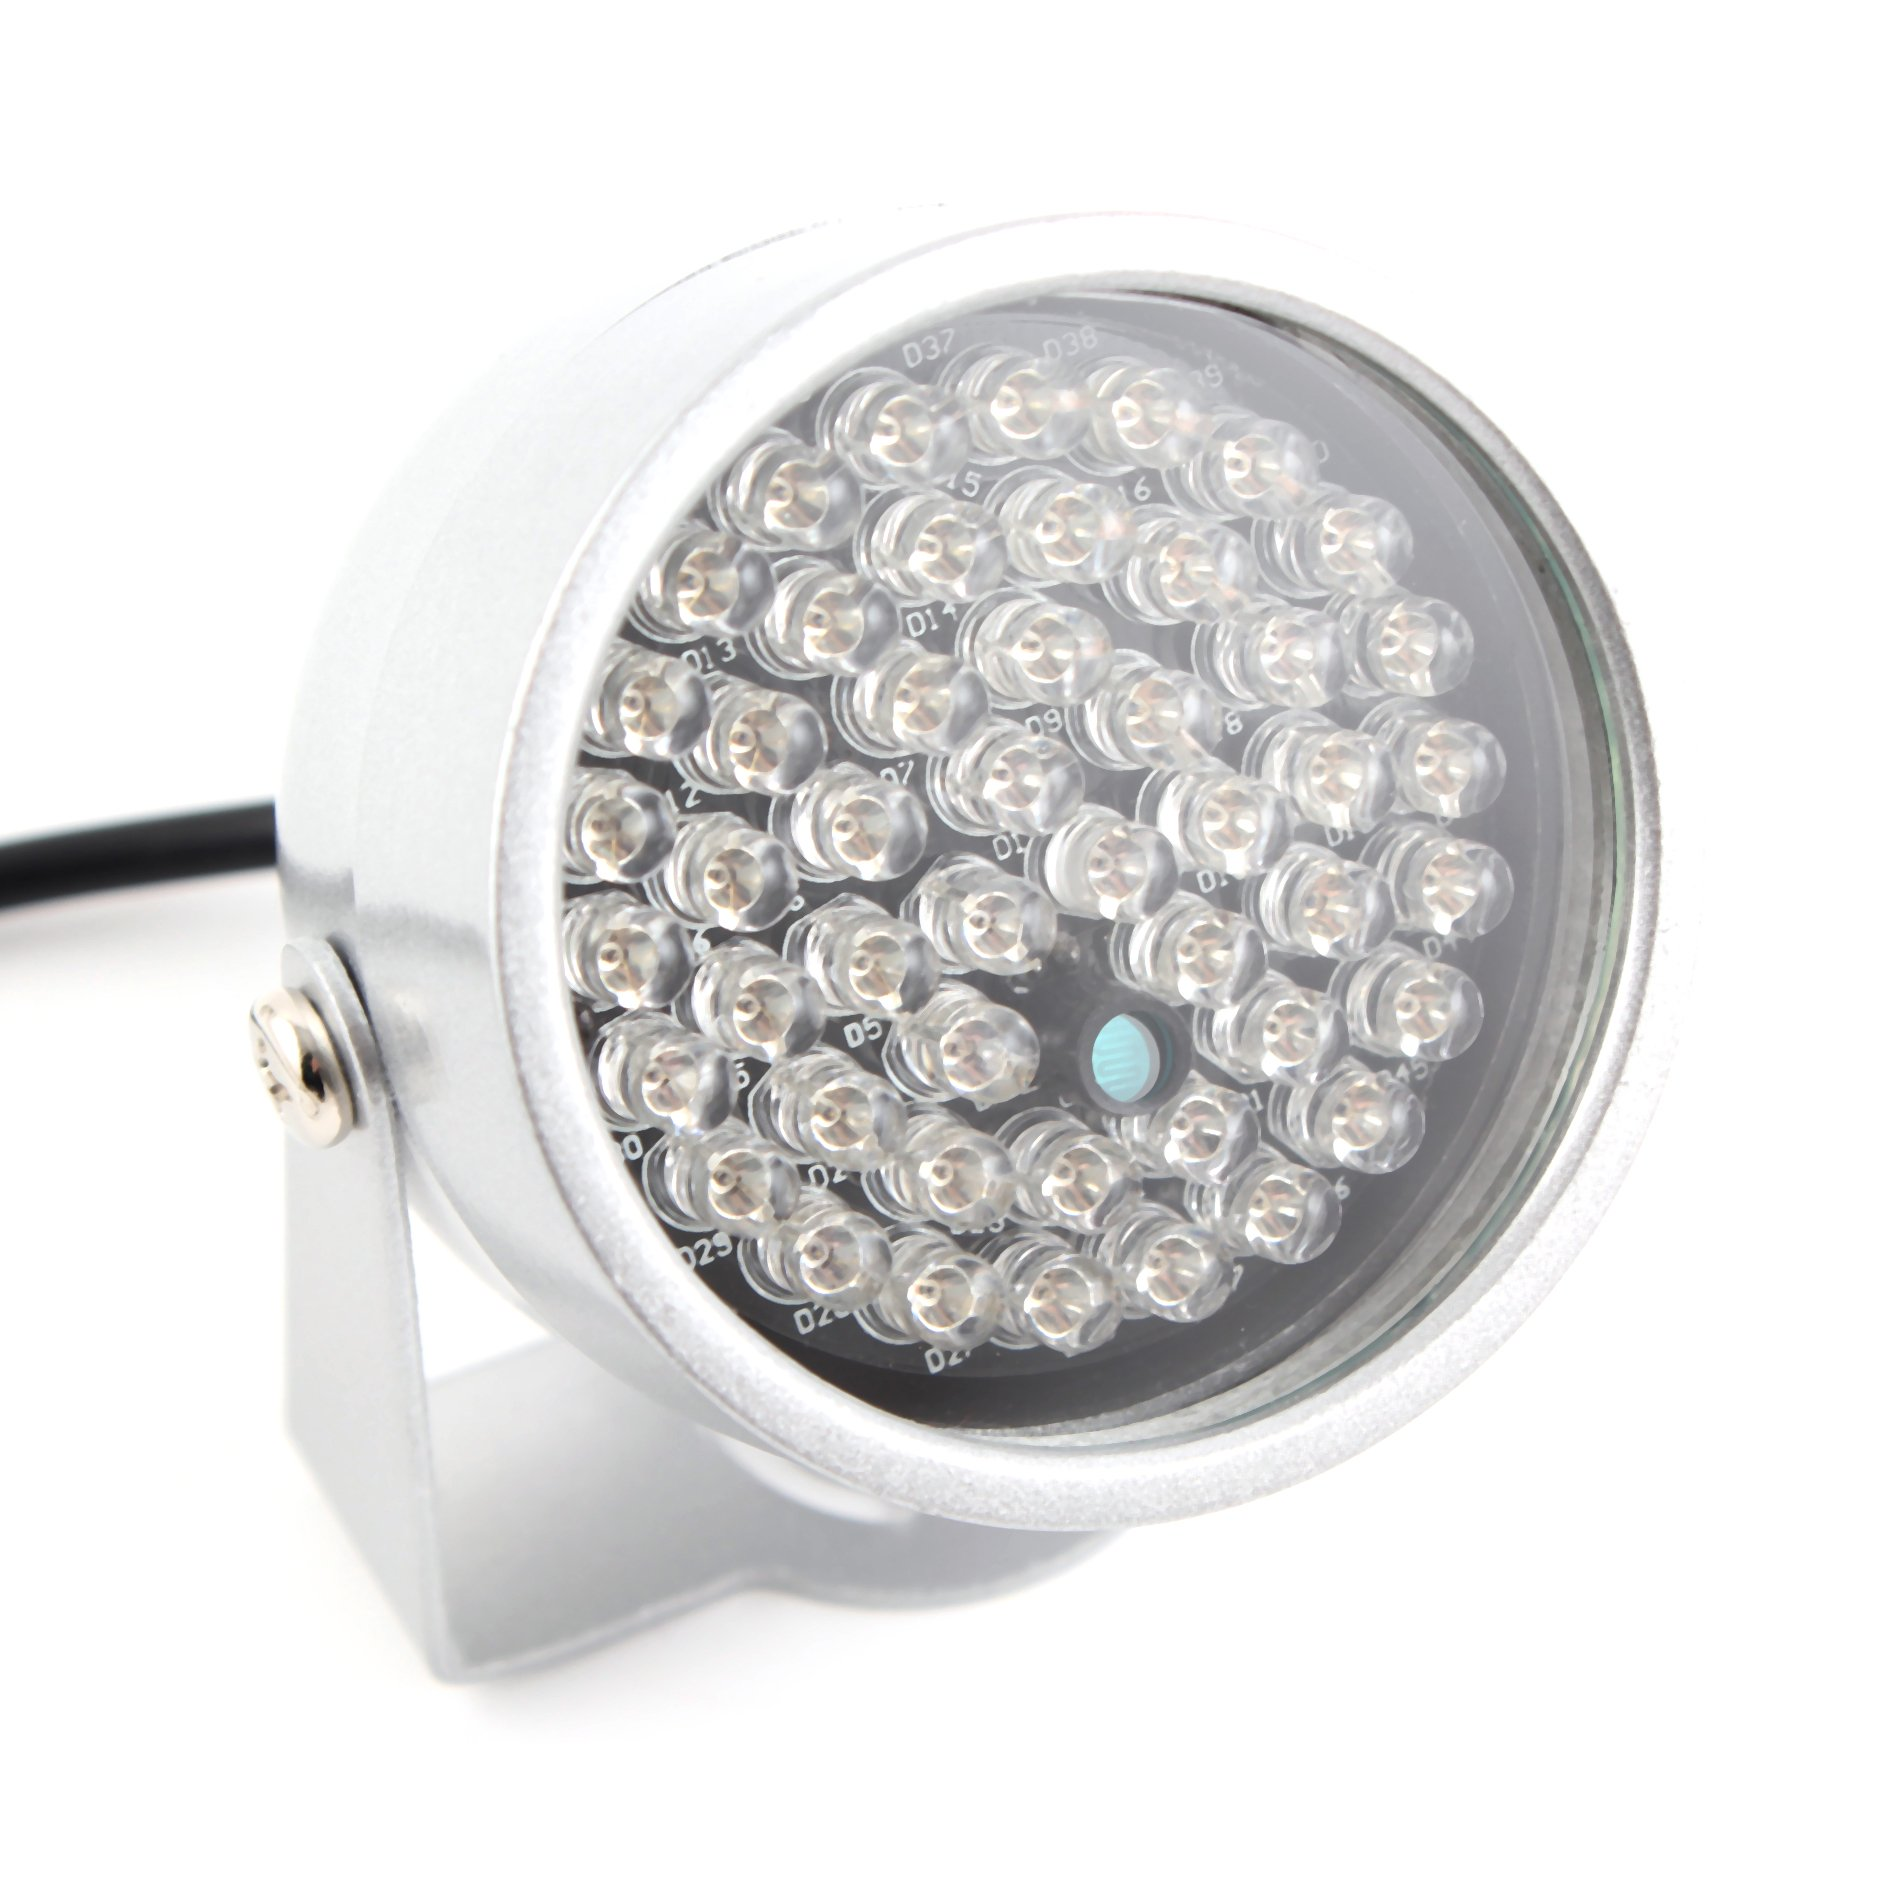 Waterproof 48 LED Illuminator Light Lamp Night Vision Lamp for Indoor Outdoor Security CCTV Camera by OLSUS